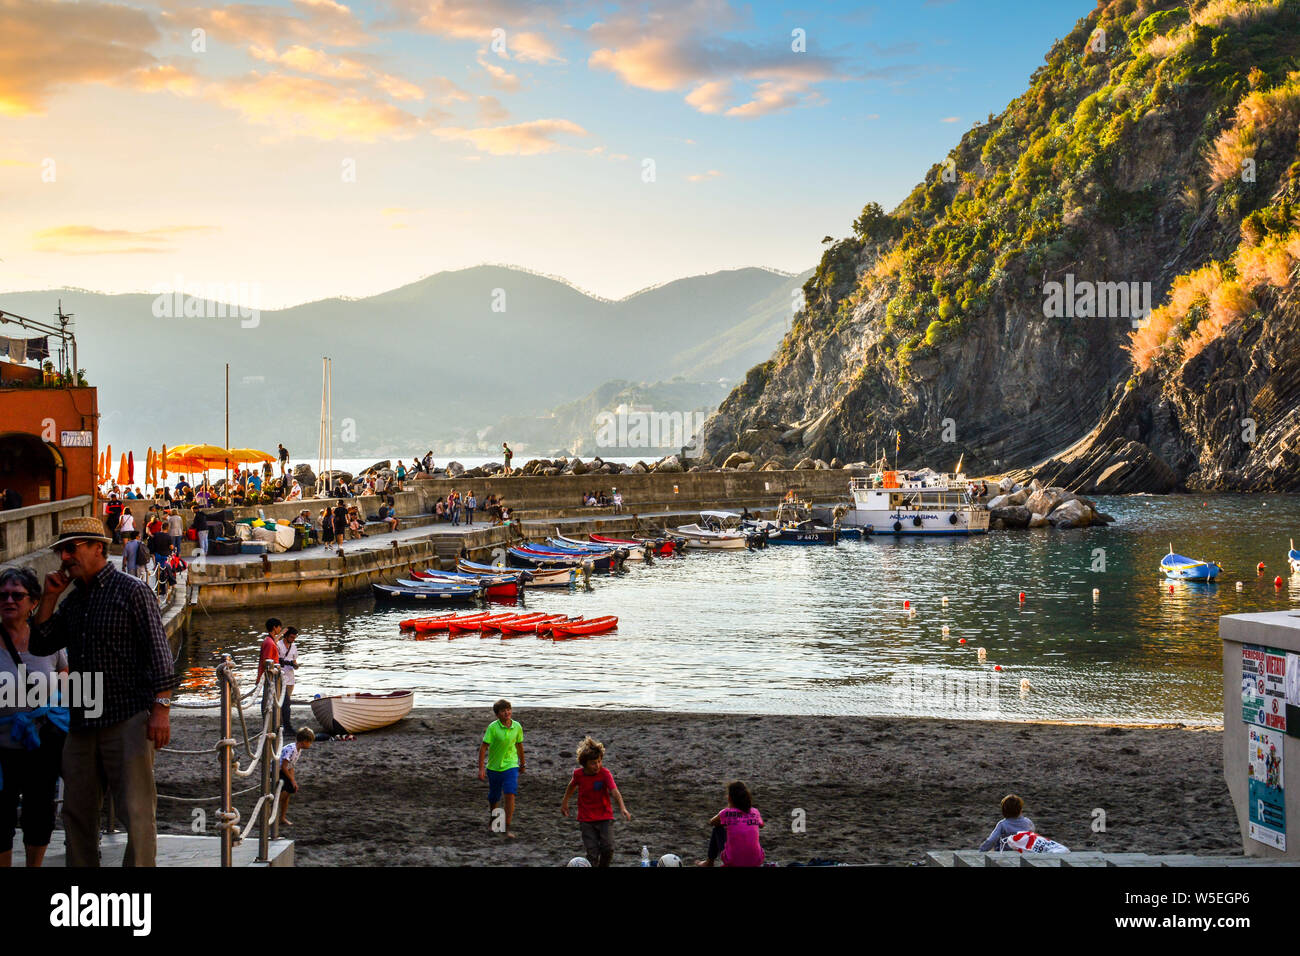 Children play along the sandy beach of Vernazza Italy harbor on the Cinque Terre as tourists enjoy a sunset dinner along the pier. Stock Photo